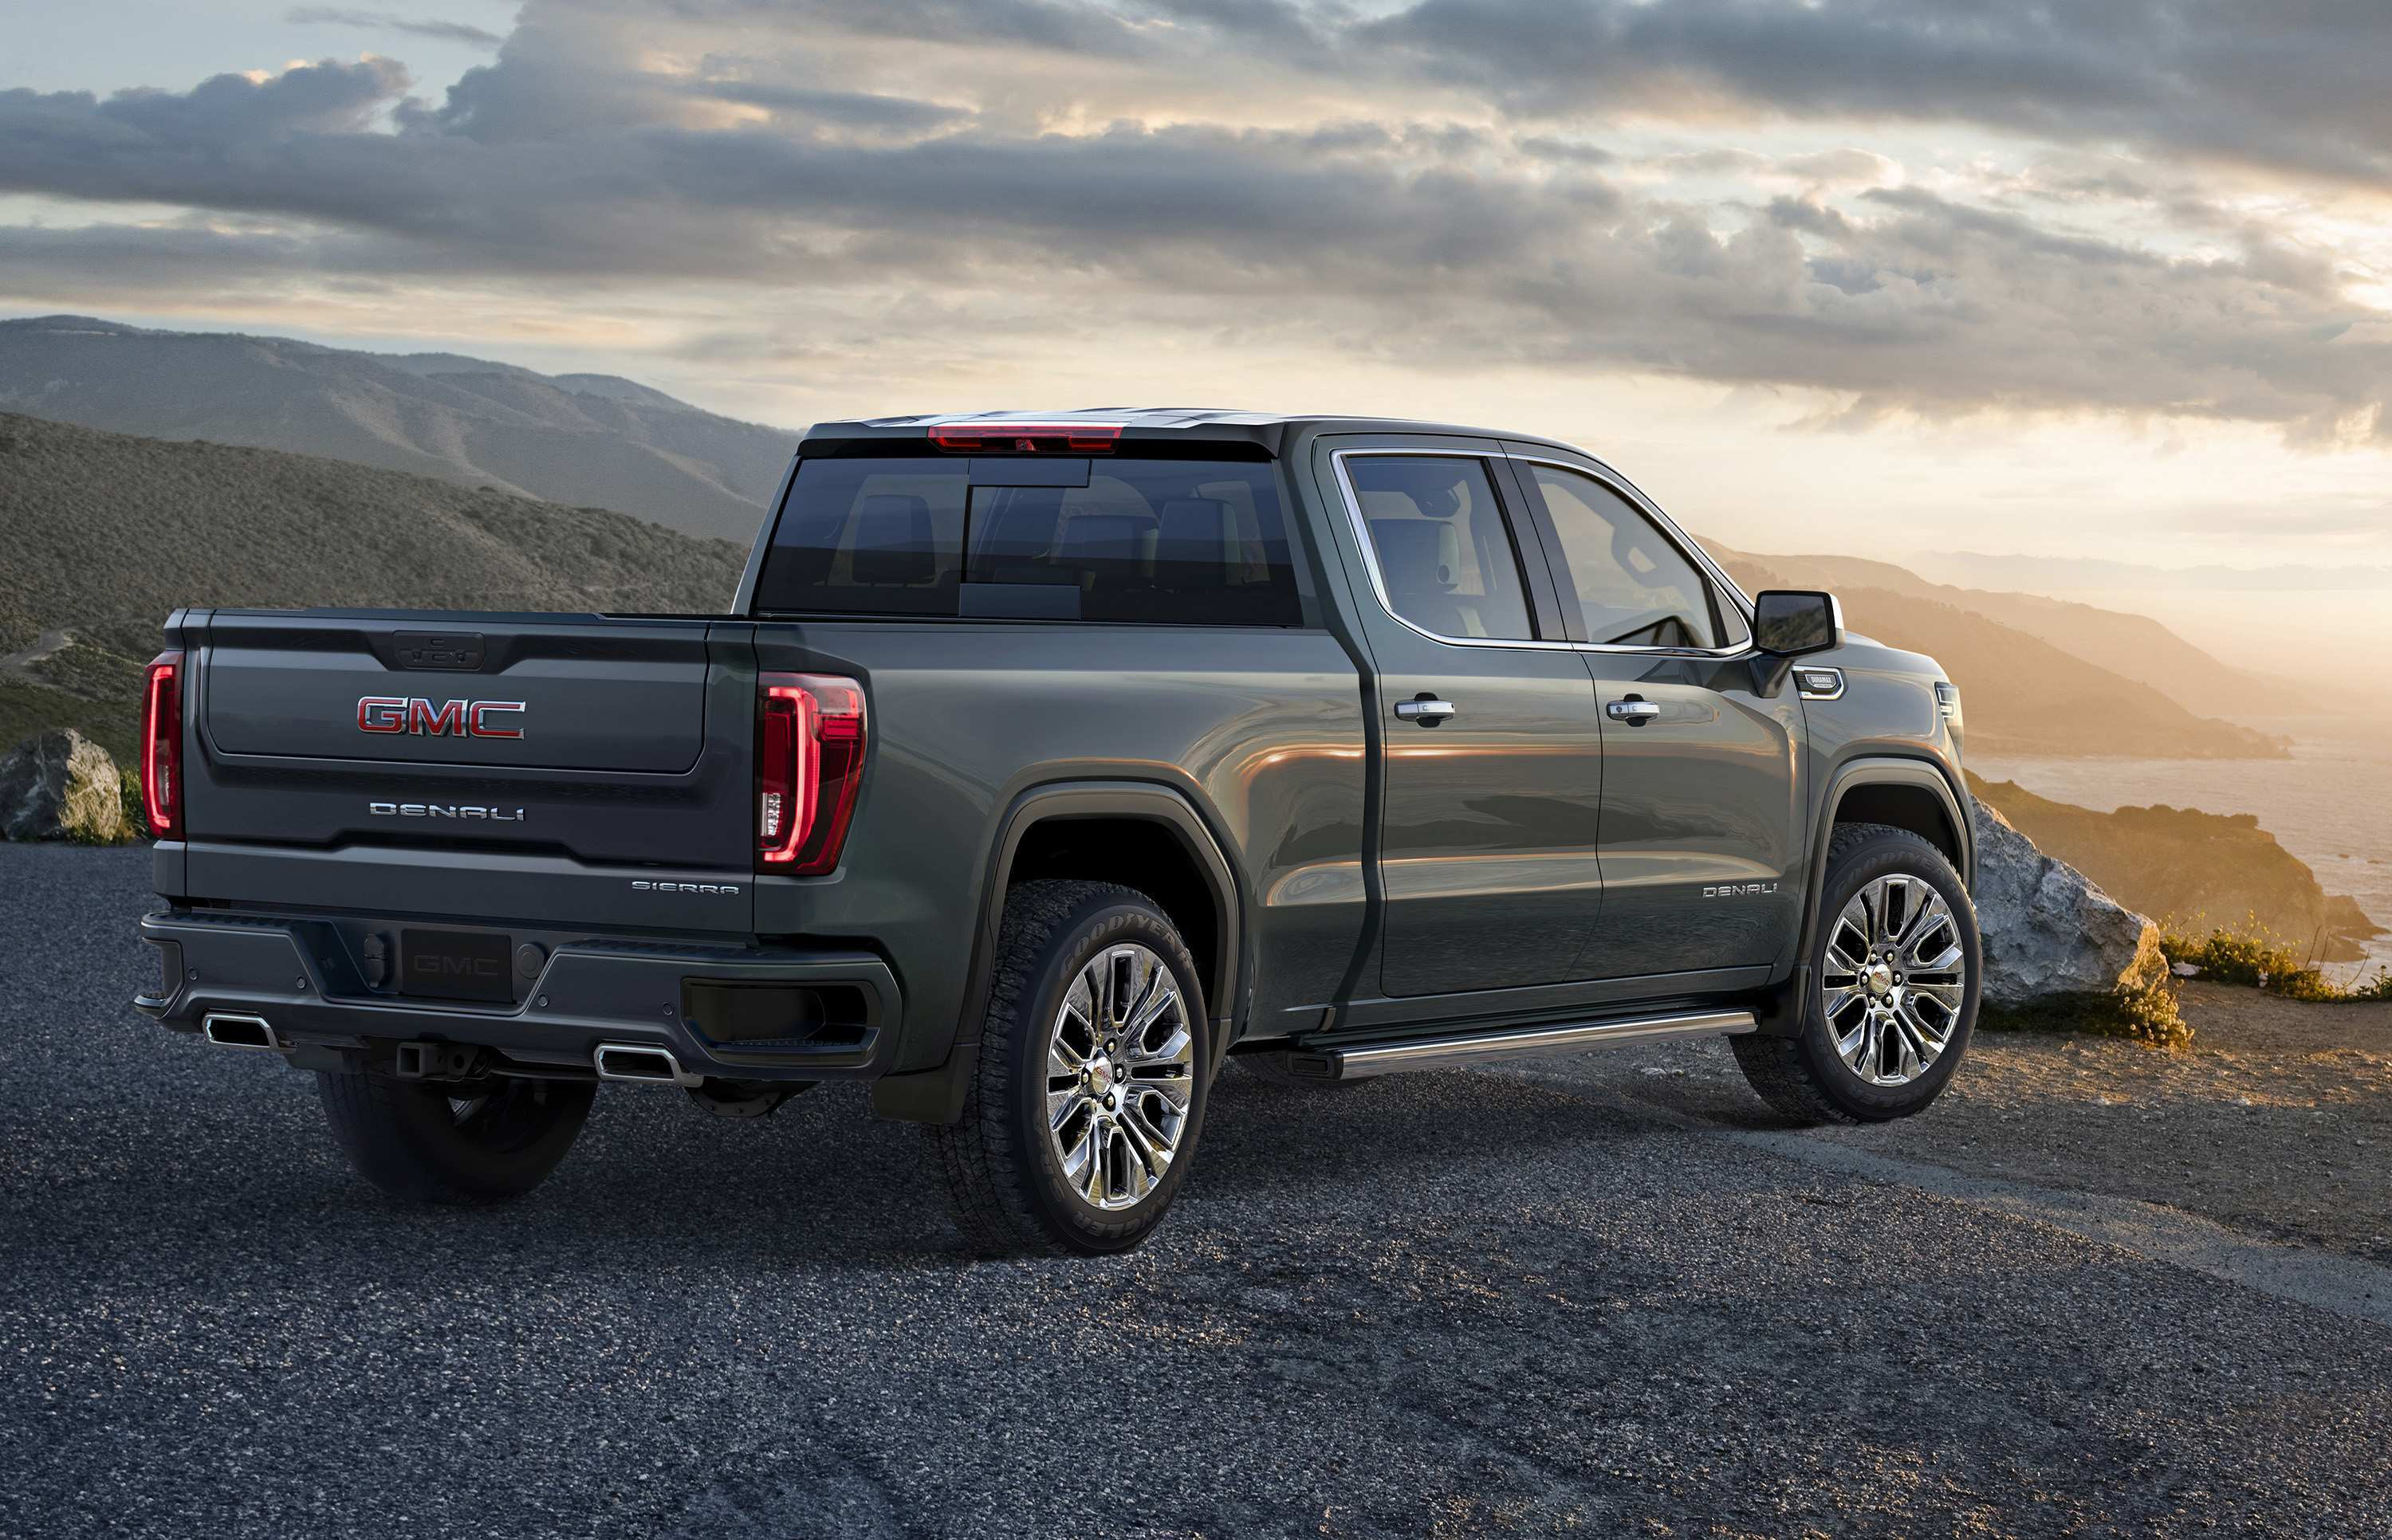 36 New 2019 GMC Sierra Review And Release Date